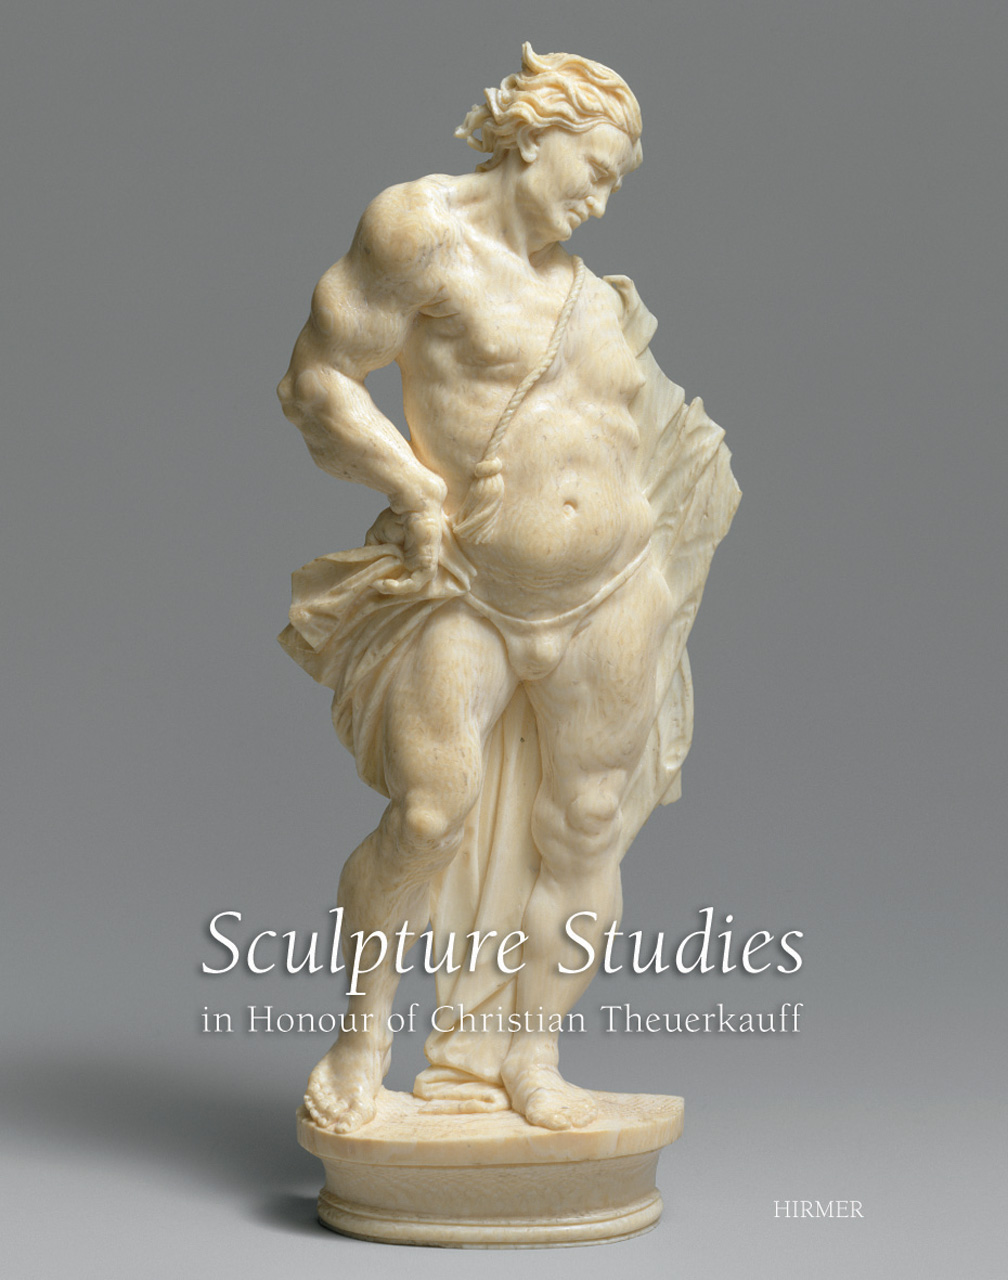 Sculpture Studies in Honour of Christian Theuerkauff